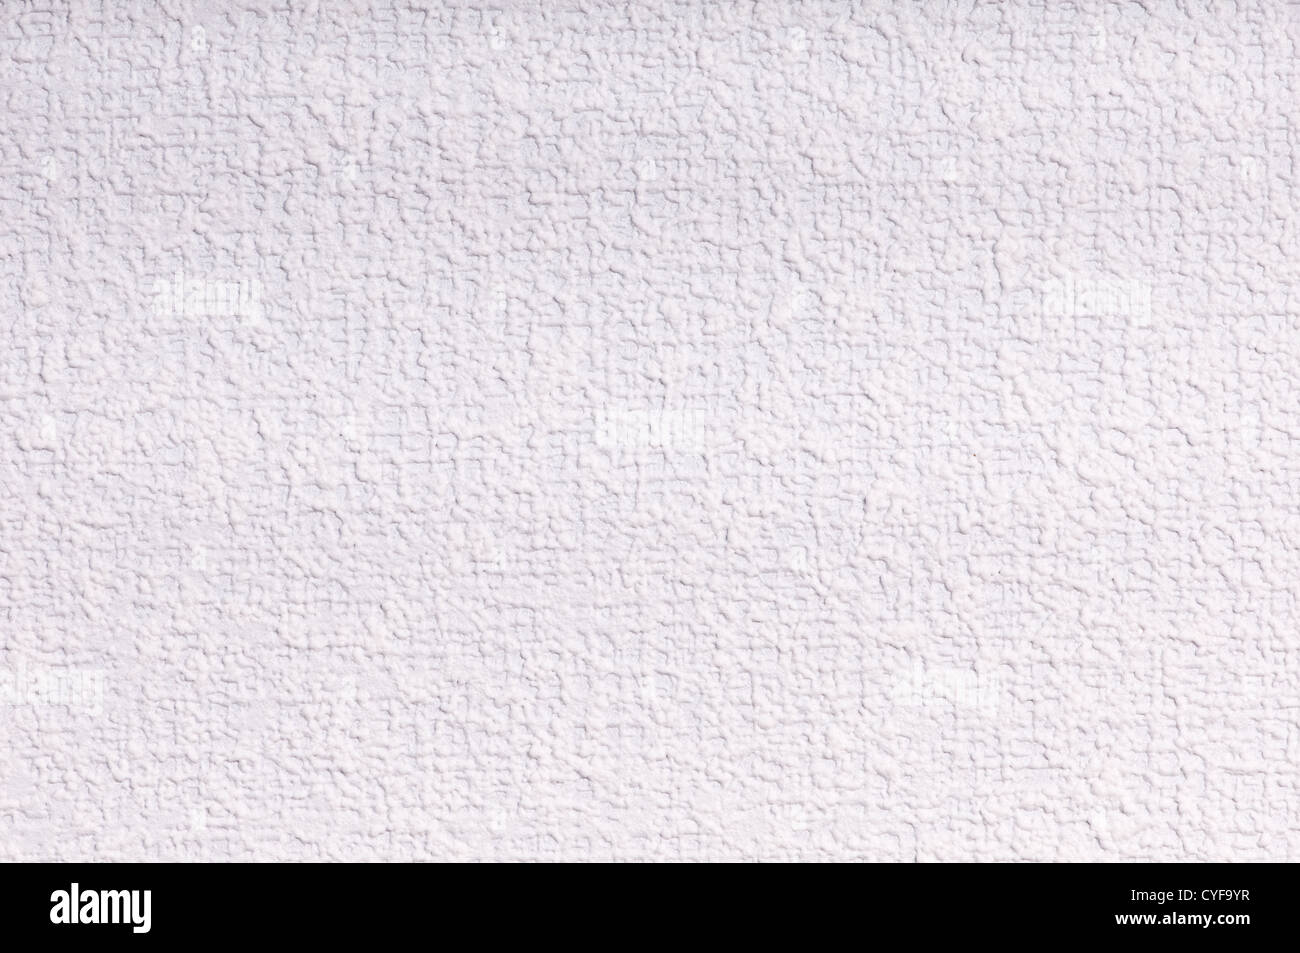 gray paper texture background - Stock Image